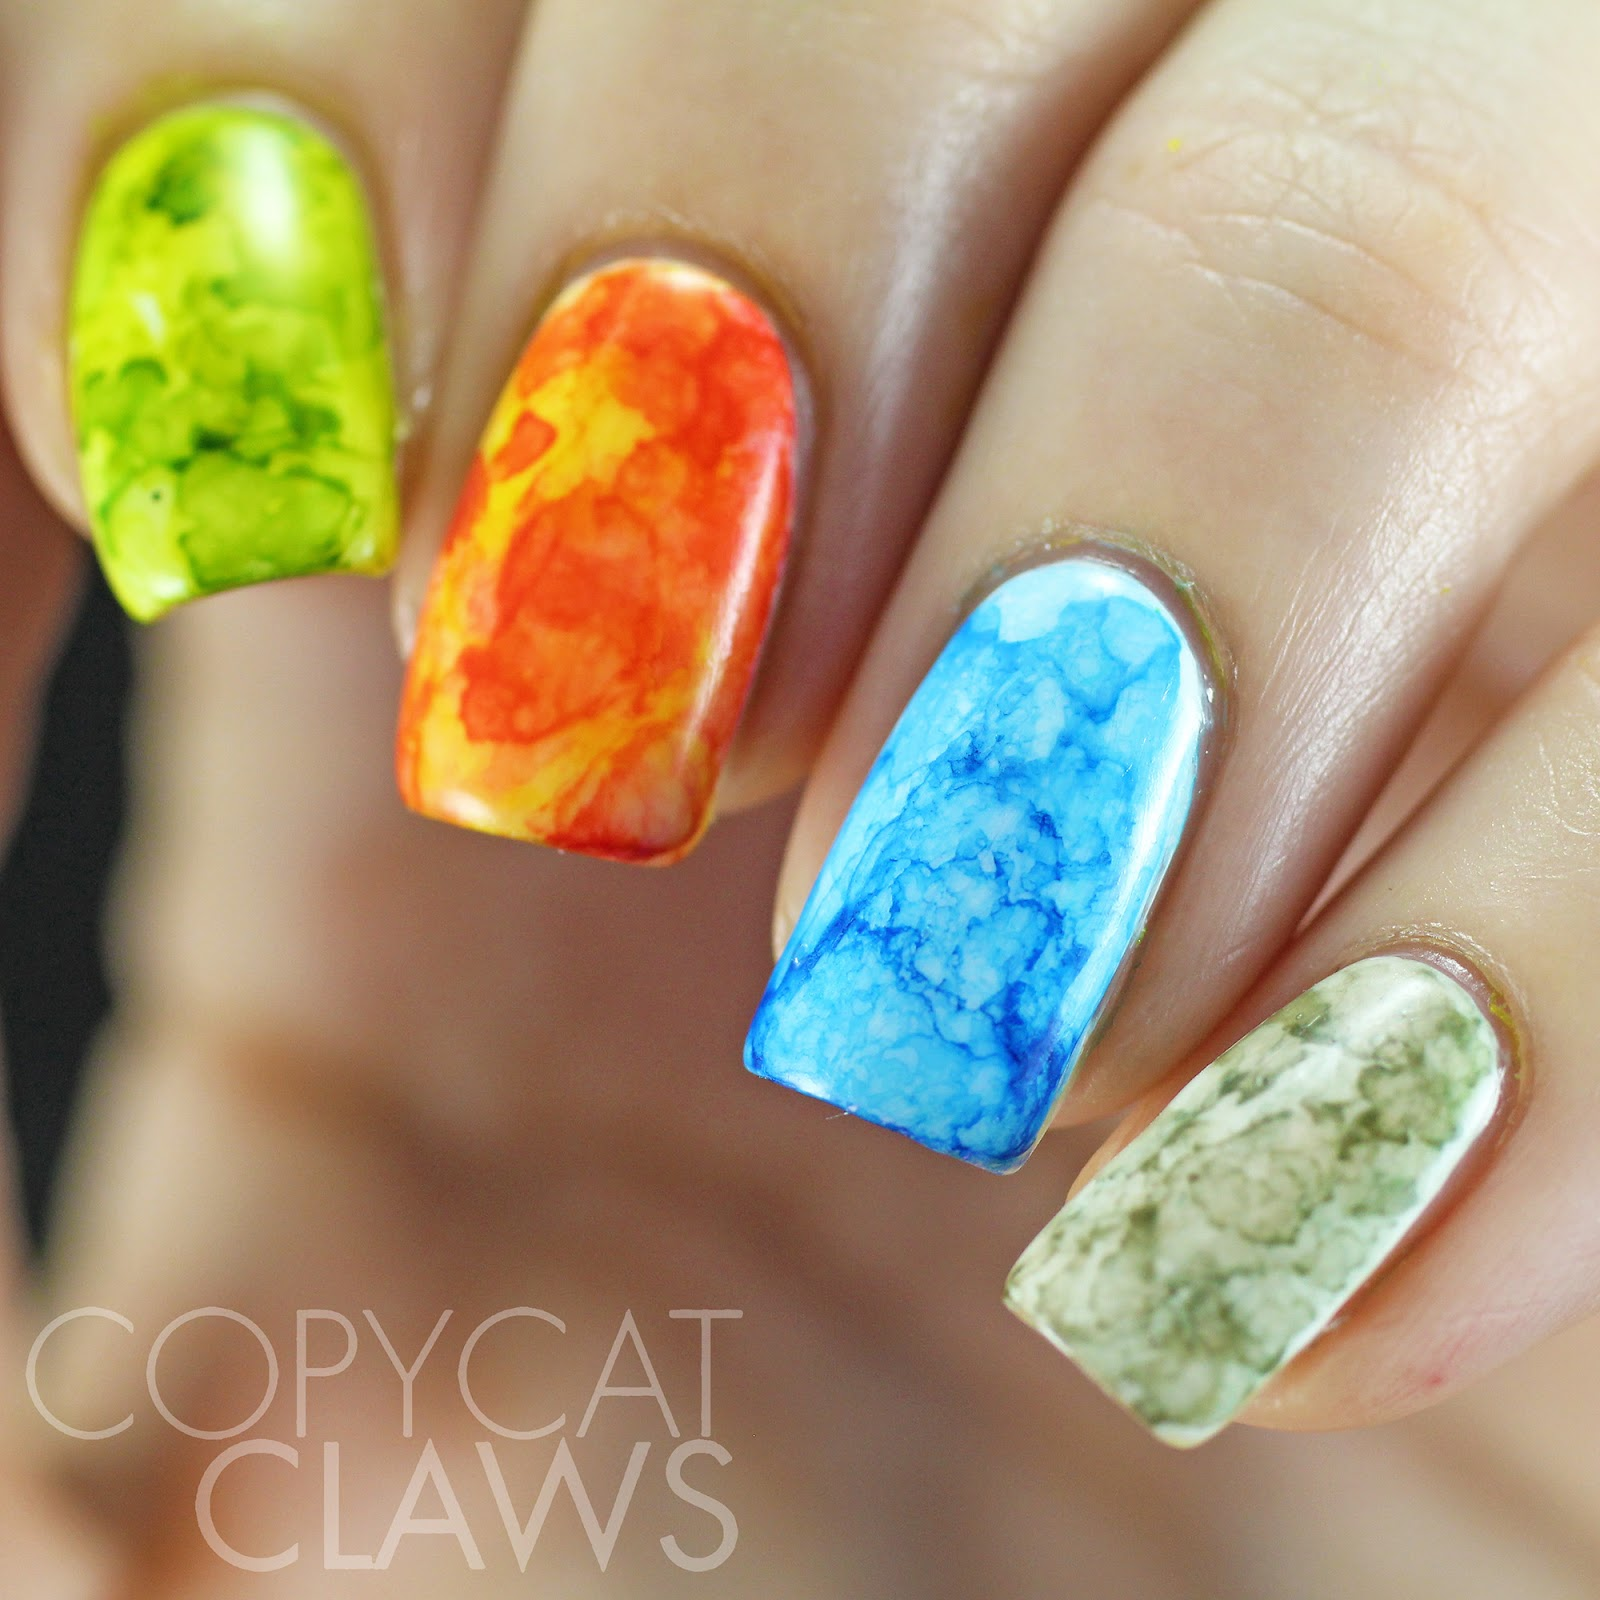 Copycat Claws Blue Color Block Nail Art: Copycat Claws: The Digit-al Dozen Does Nature: Day 5 The